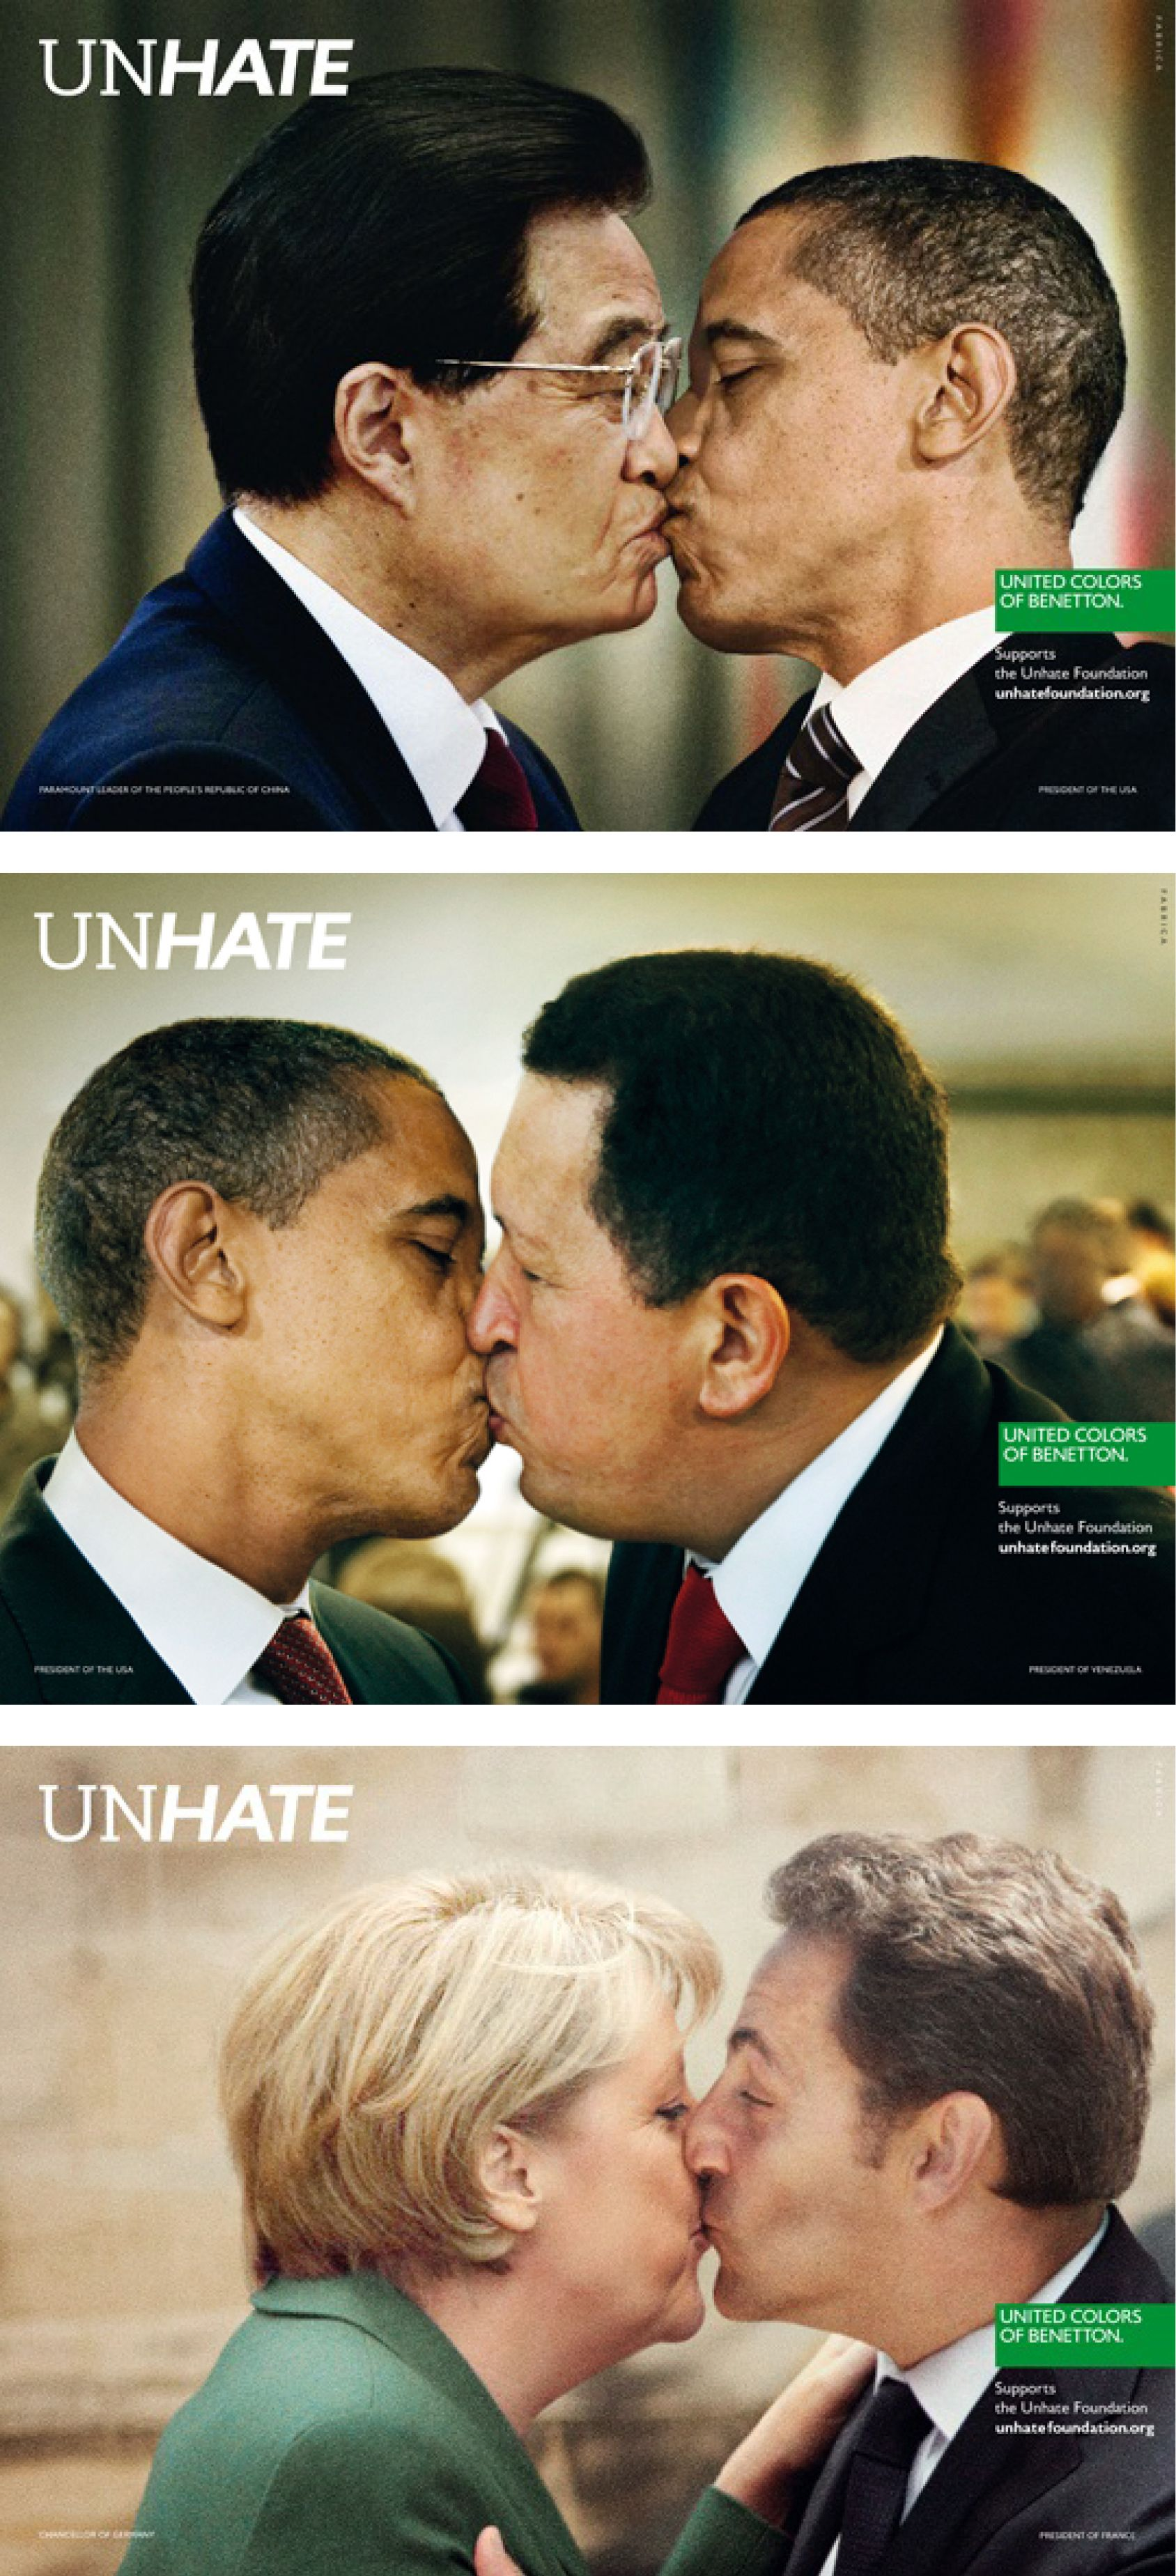 2012 - CLIO - Print - Gold - United Colors of Benetton Unhate Los Angeles -  Art Director  Robert Nakata 2f76b7e6d16